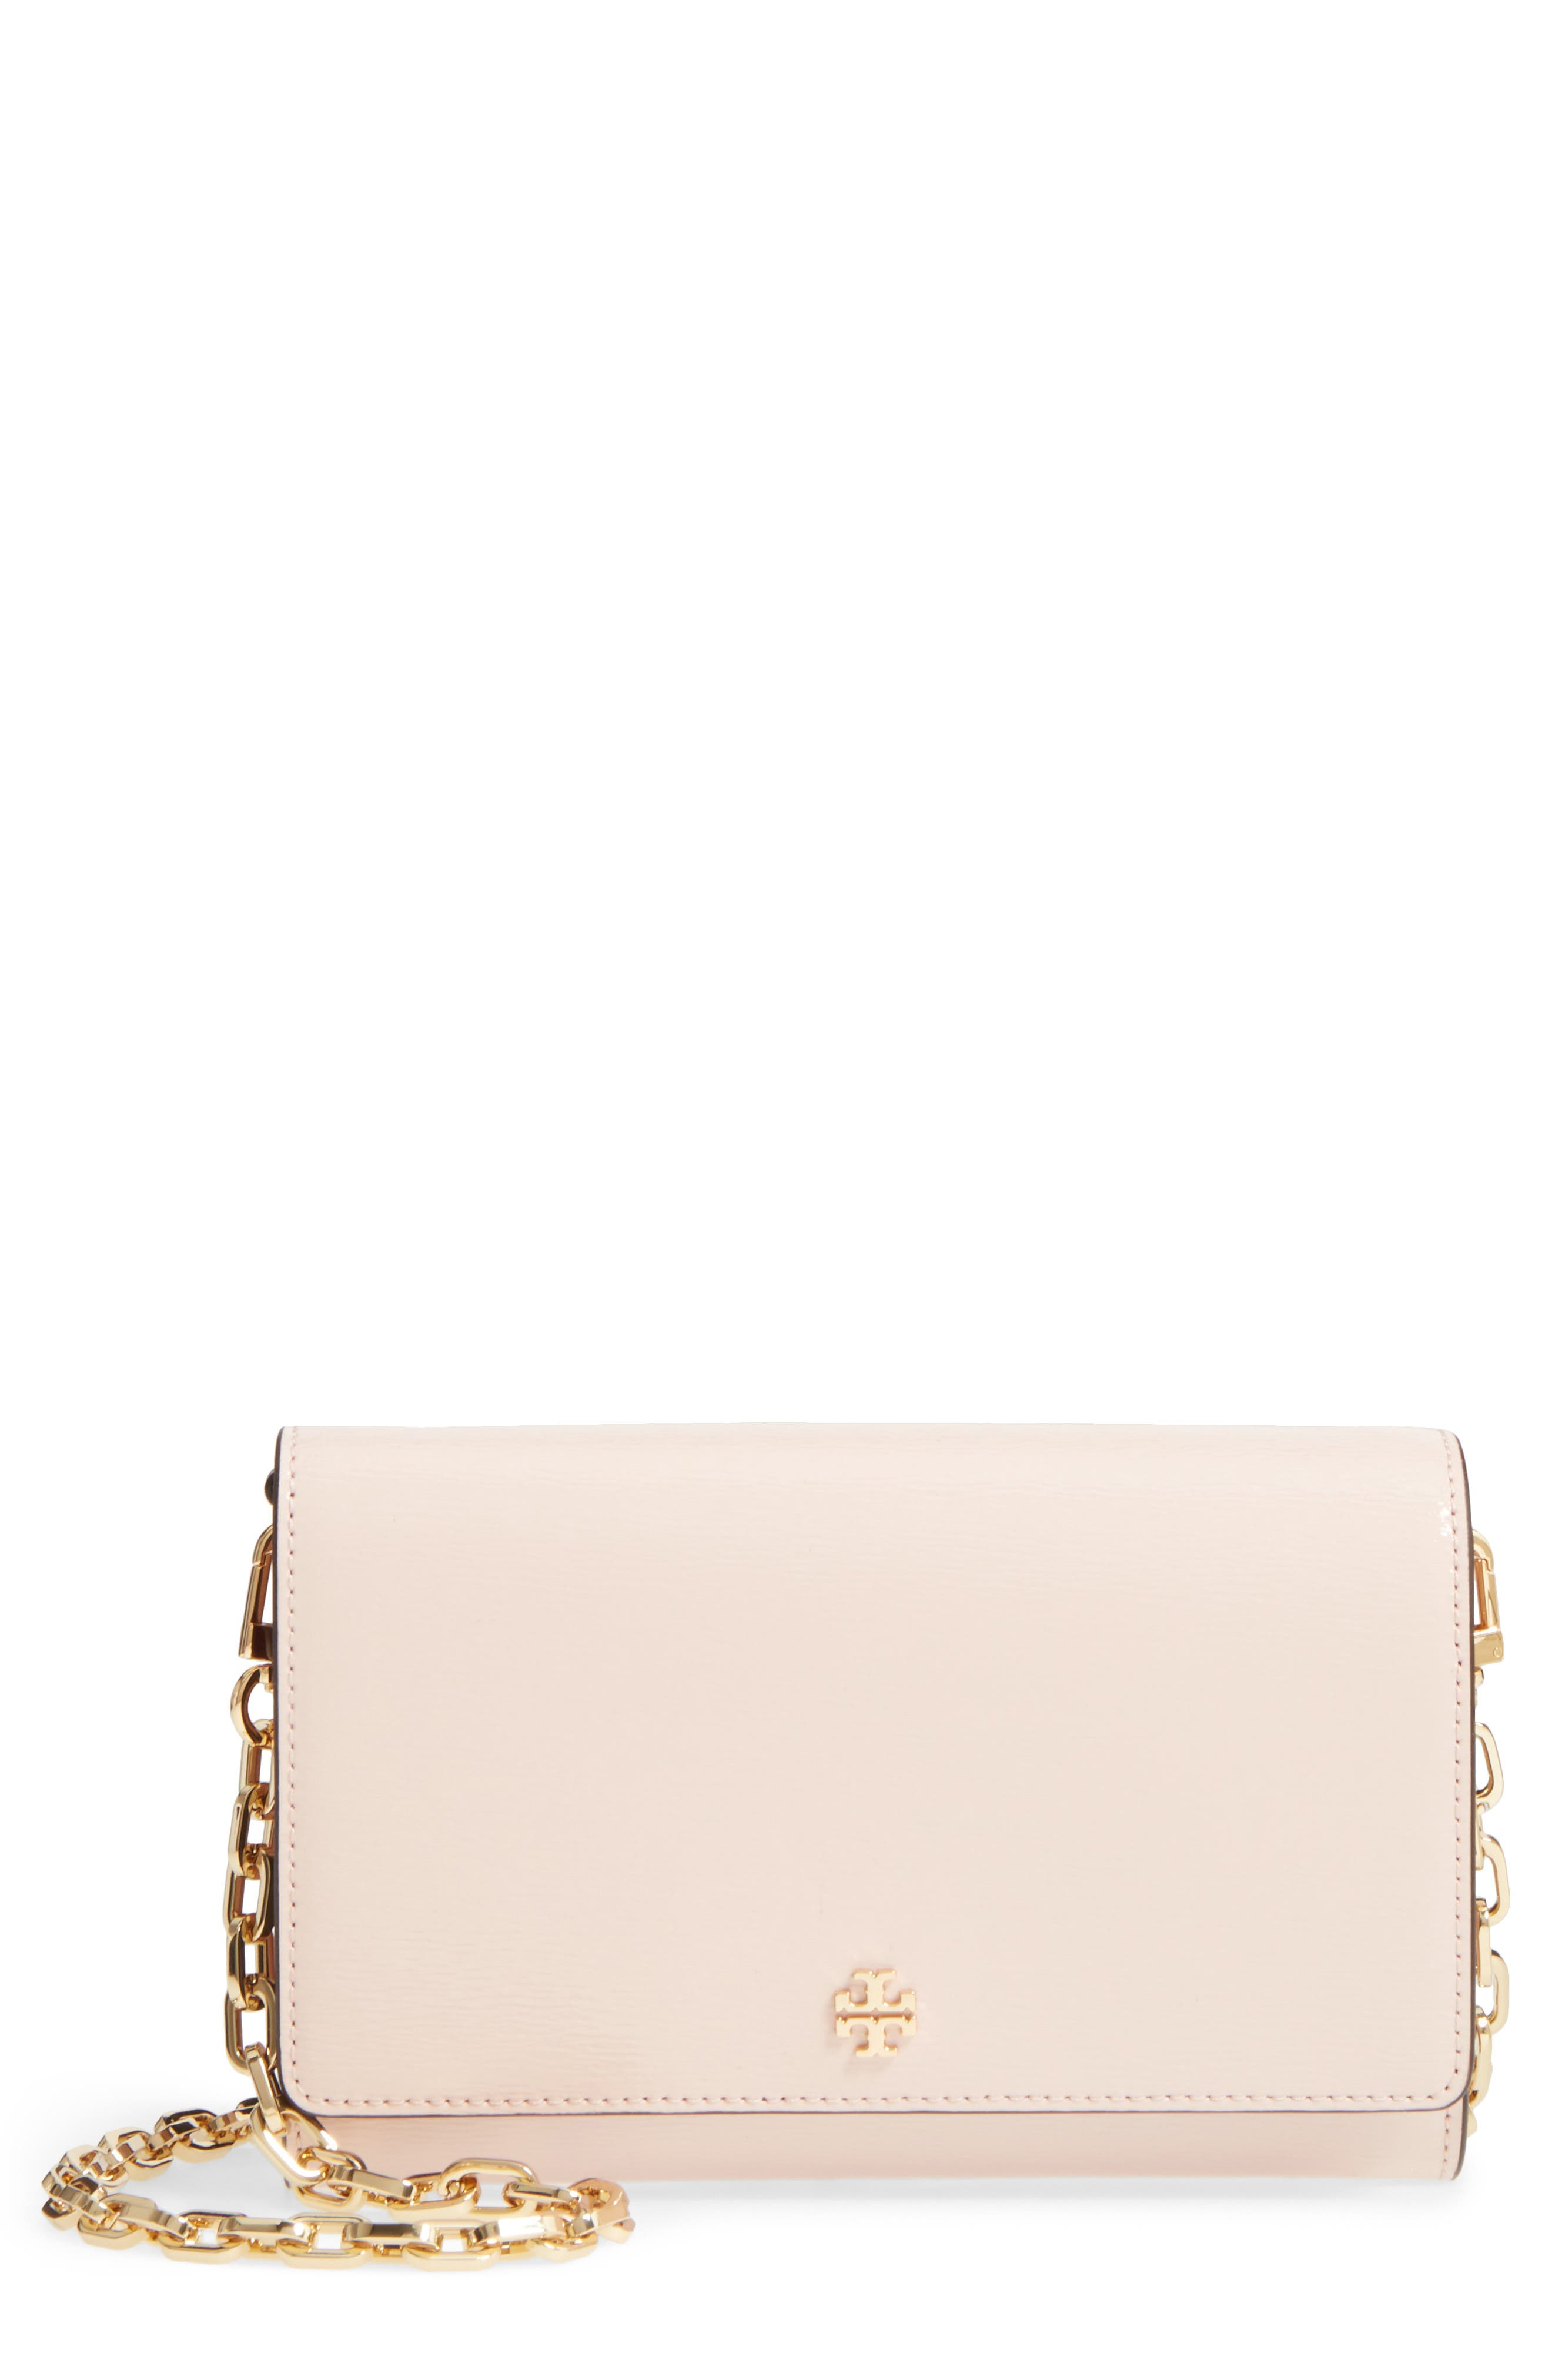 Main Image - Tory Burch Robinson Patent Leather Wallet on a Chain